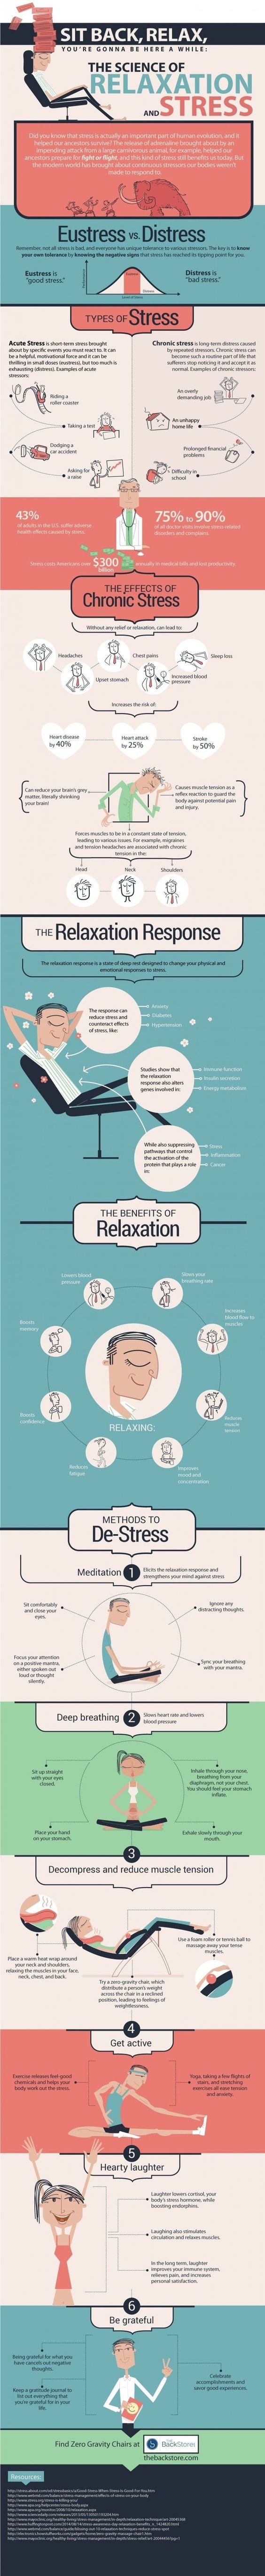 Stress and Relaxation